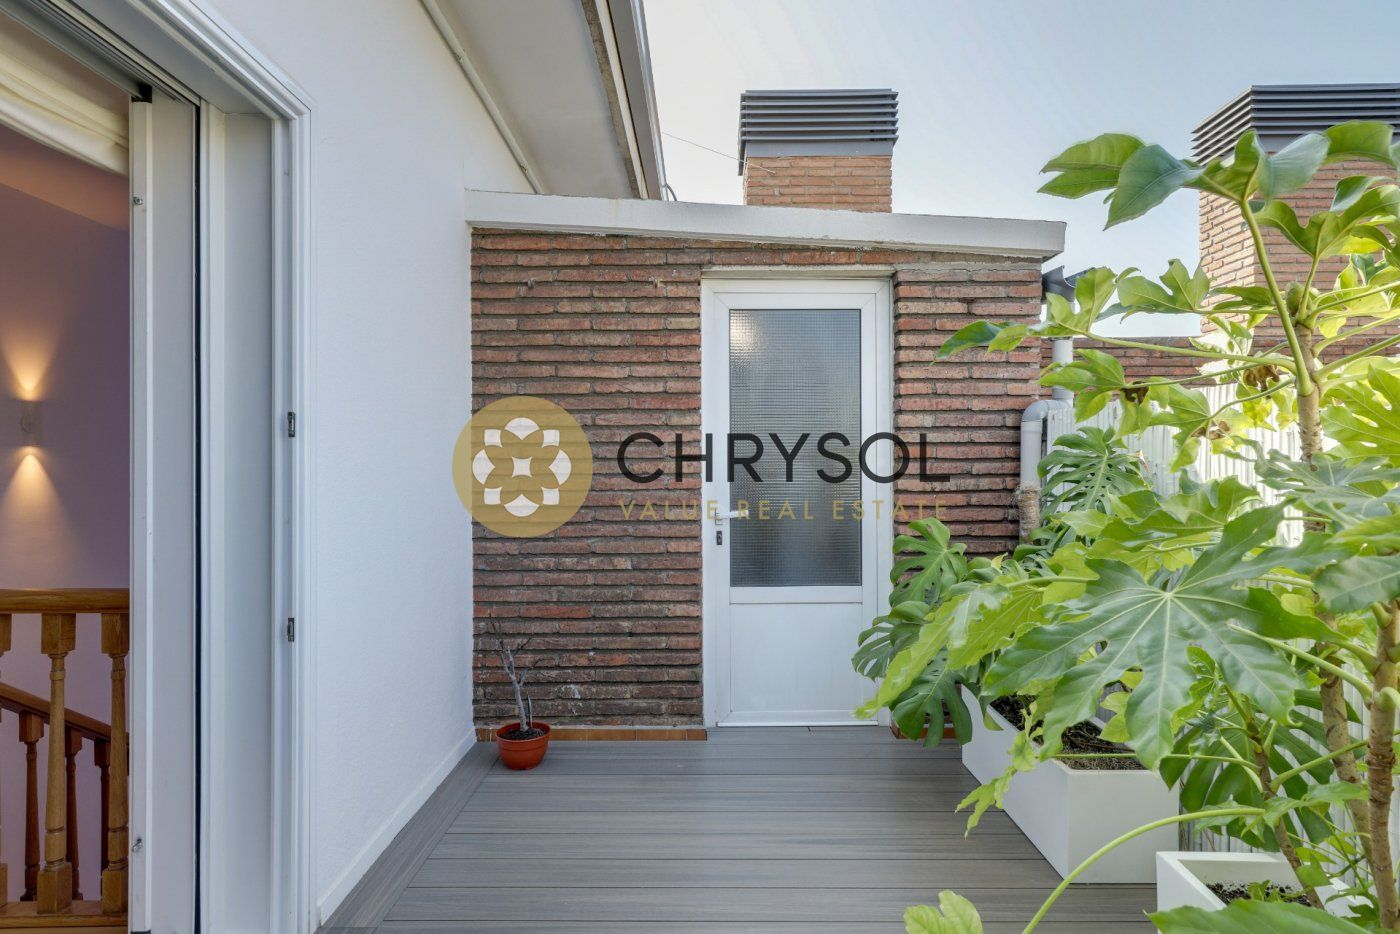 Photogallery - 40 - Chrysol Value